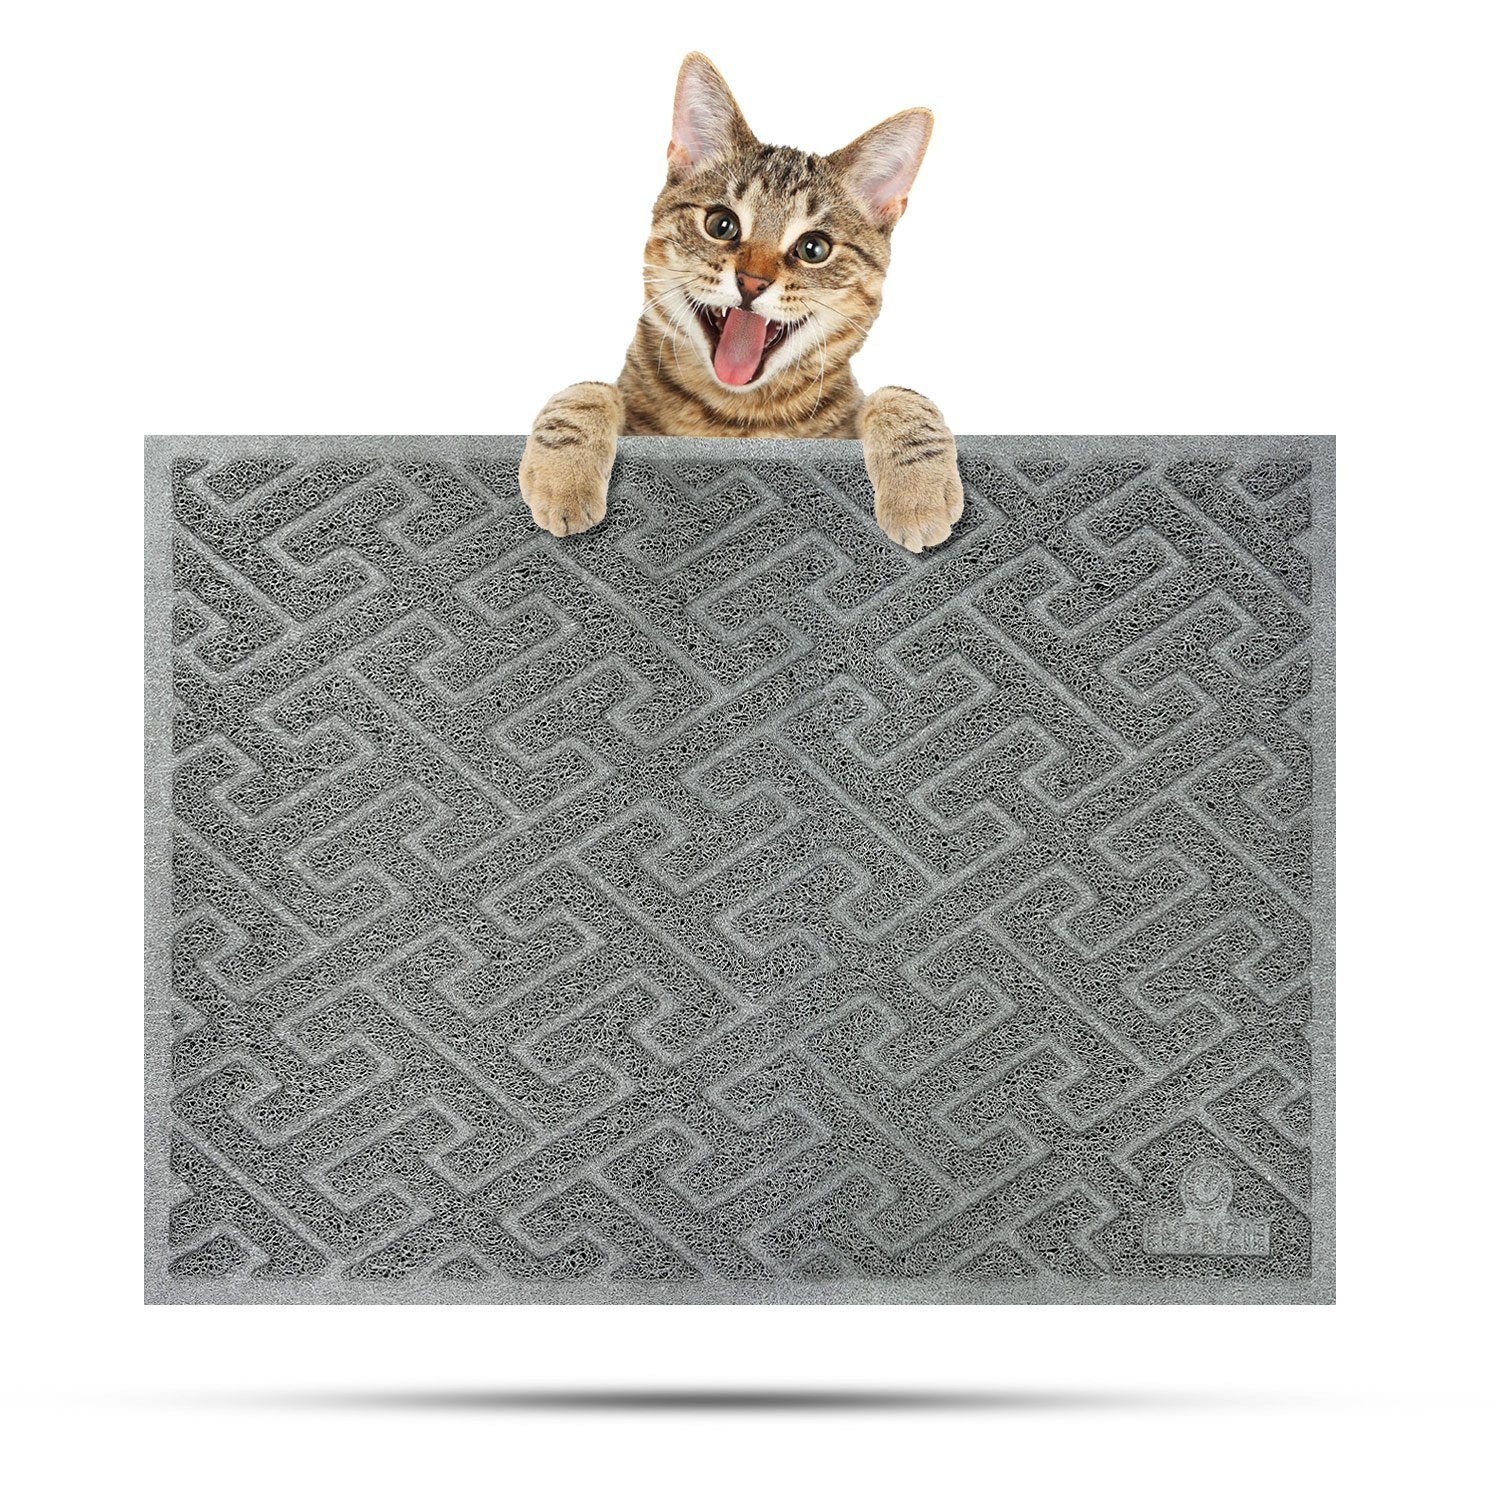 EHZNZIE Cat Litter Mat Non-Slip Traps Litter from Box and Paws,Scatter Control and Phthalate & BPA Free,Soft on Sensitive Paws and Easy to Clean-35'' x 23'' (Light Grey)